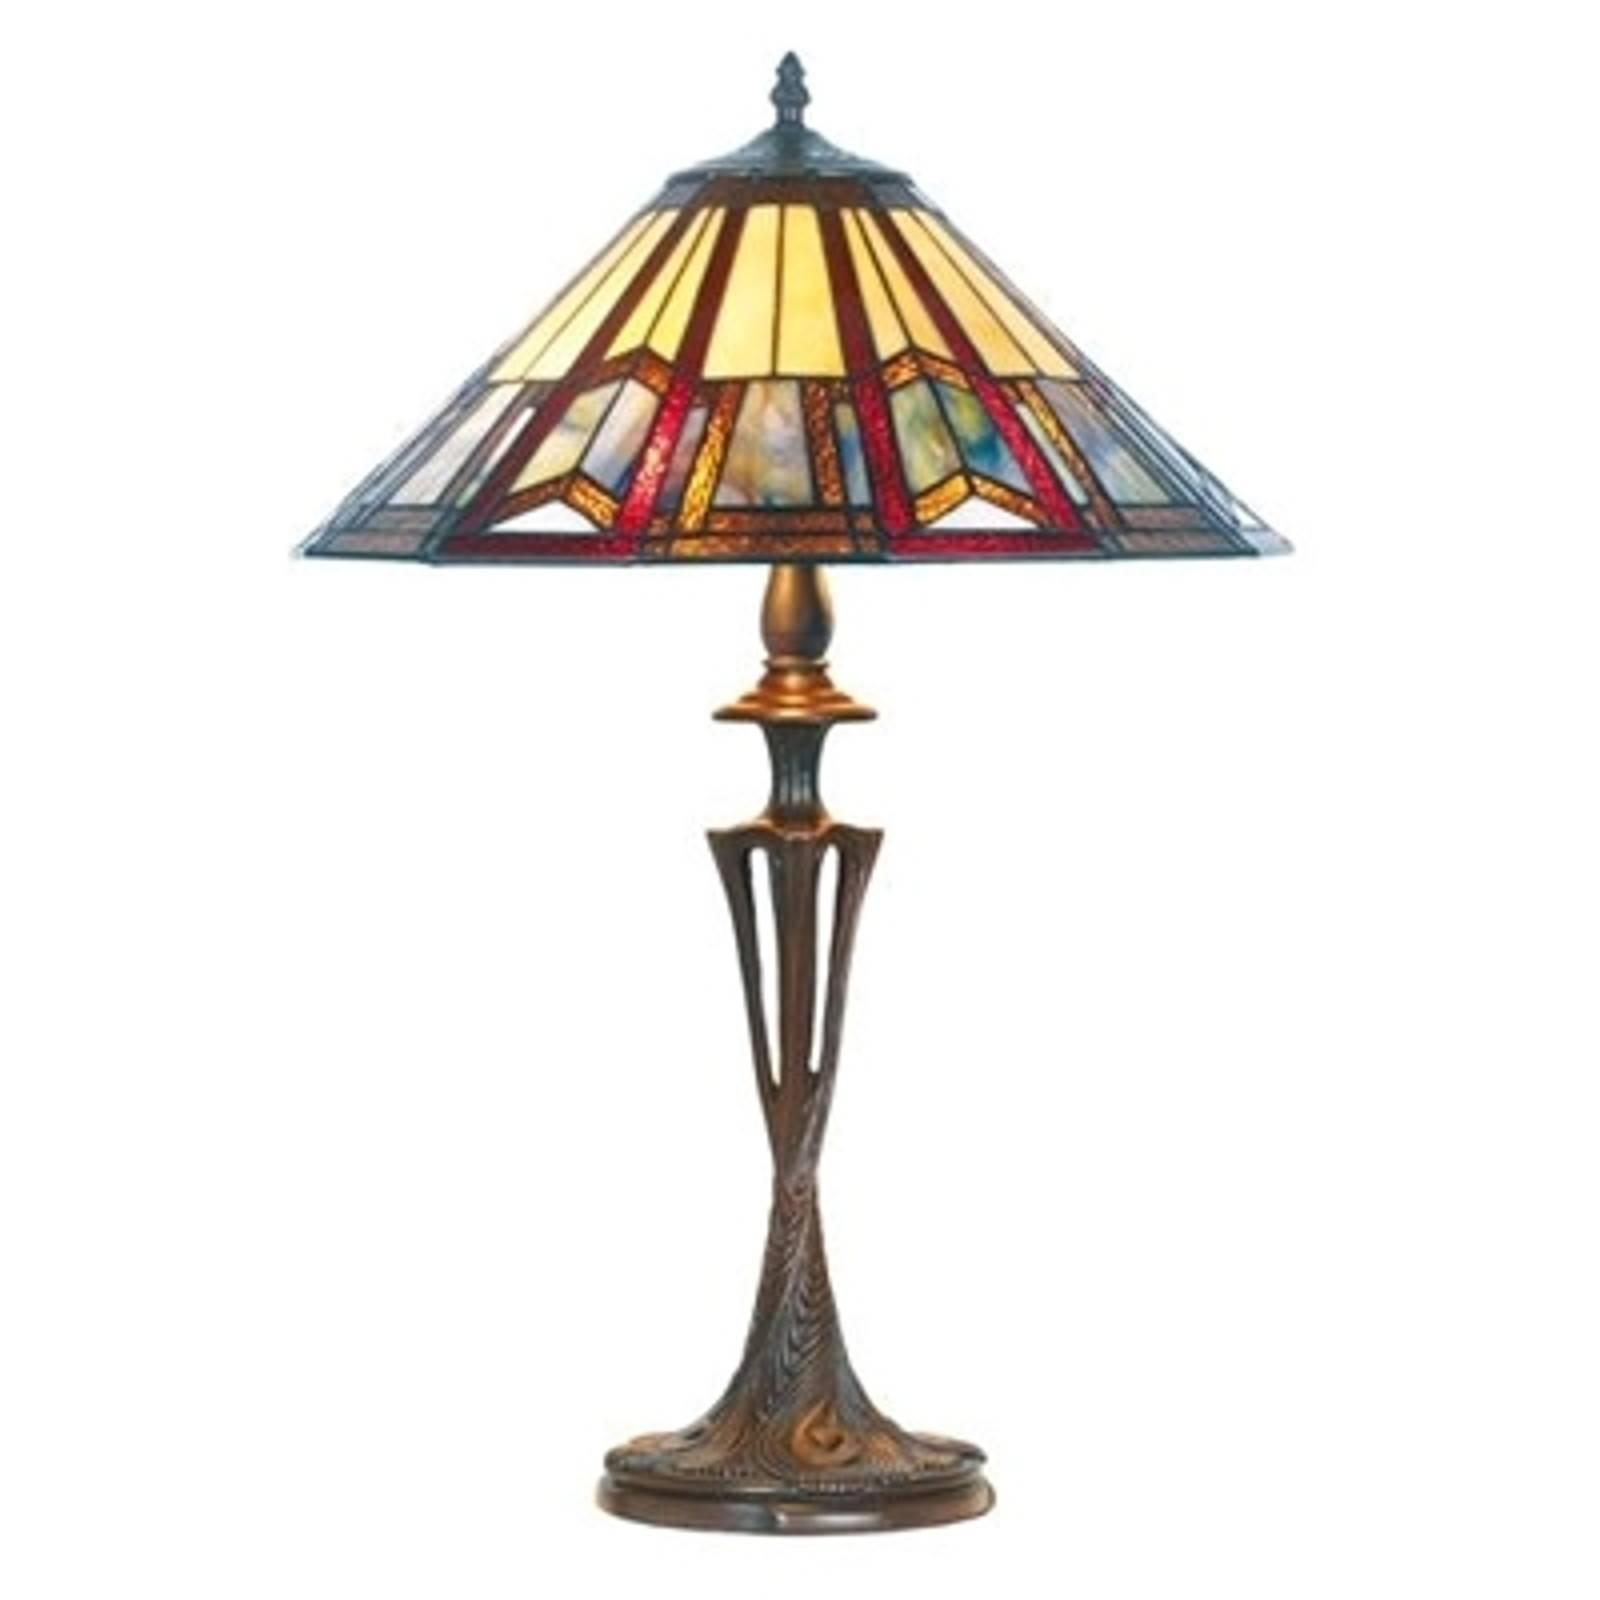 LILLIE elegant Tiffany-style table lamp from Artistar